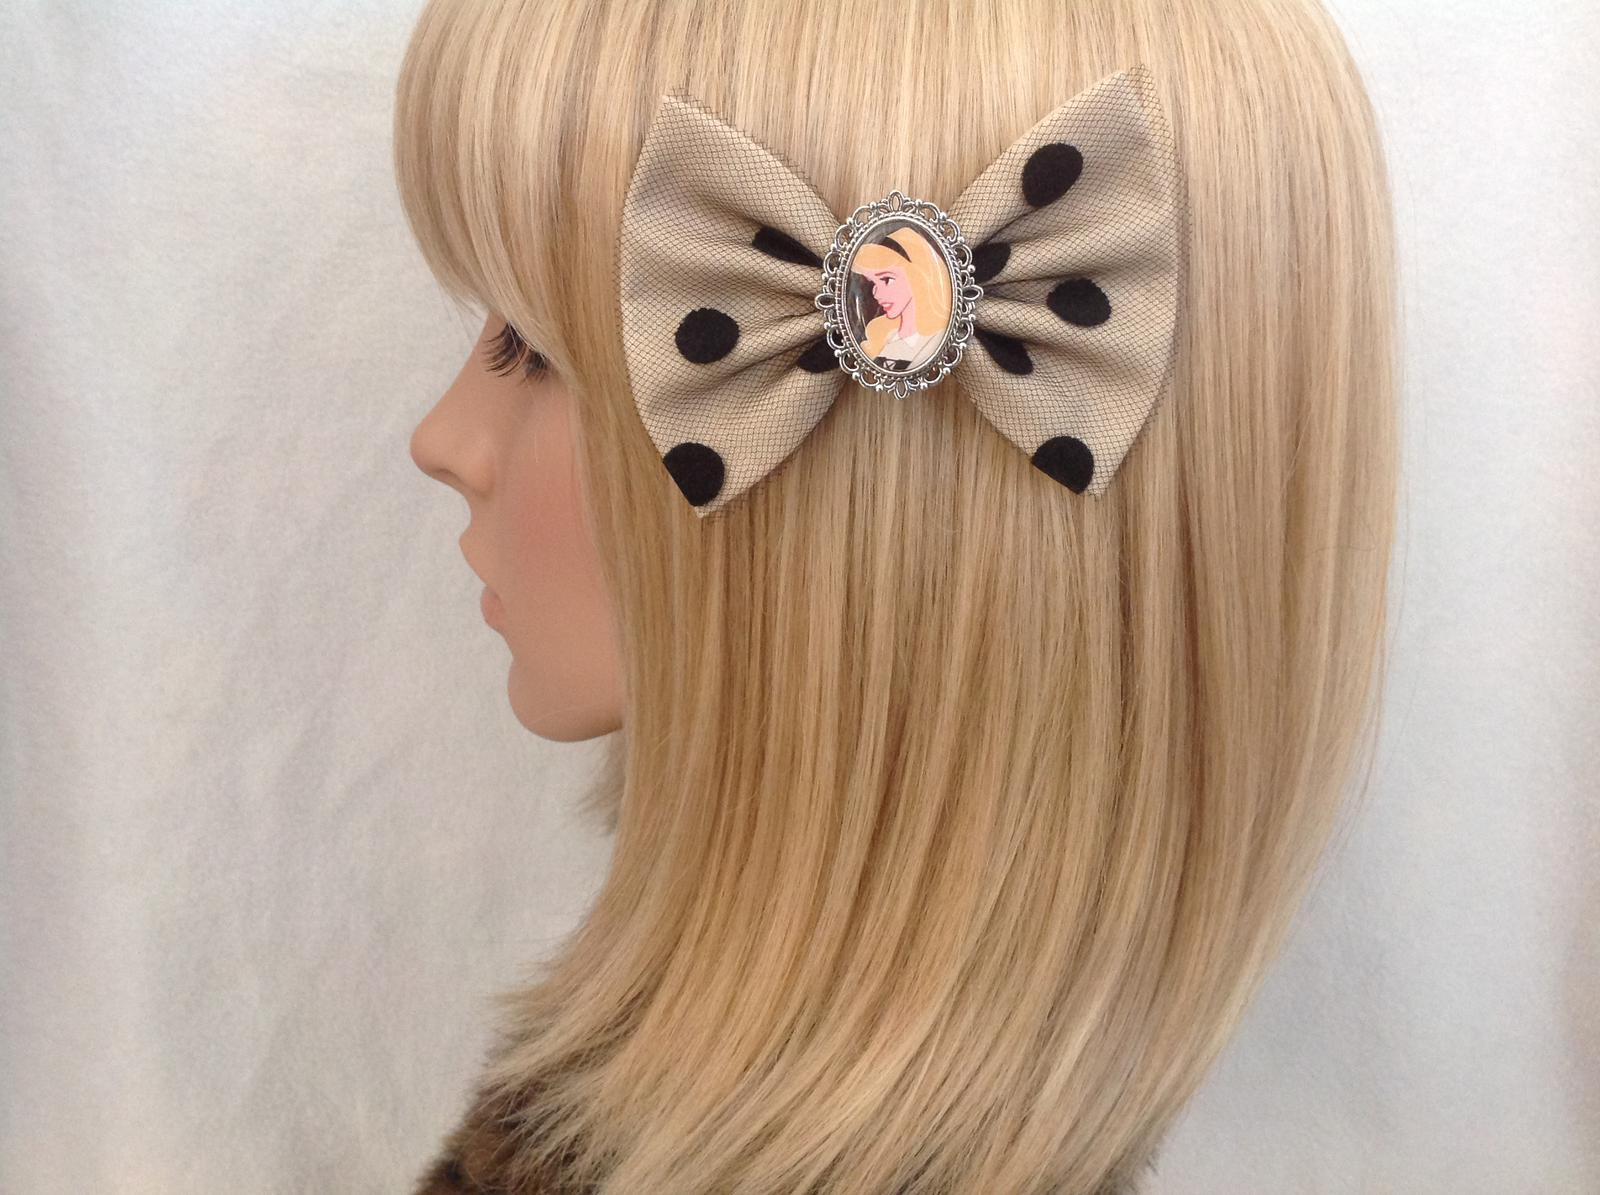 Sleeping Beauty Aurora hair bow